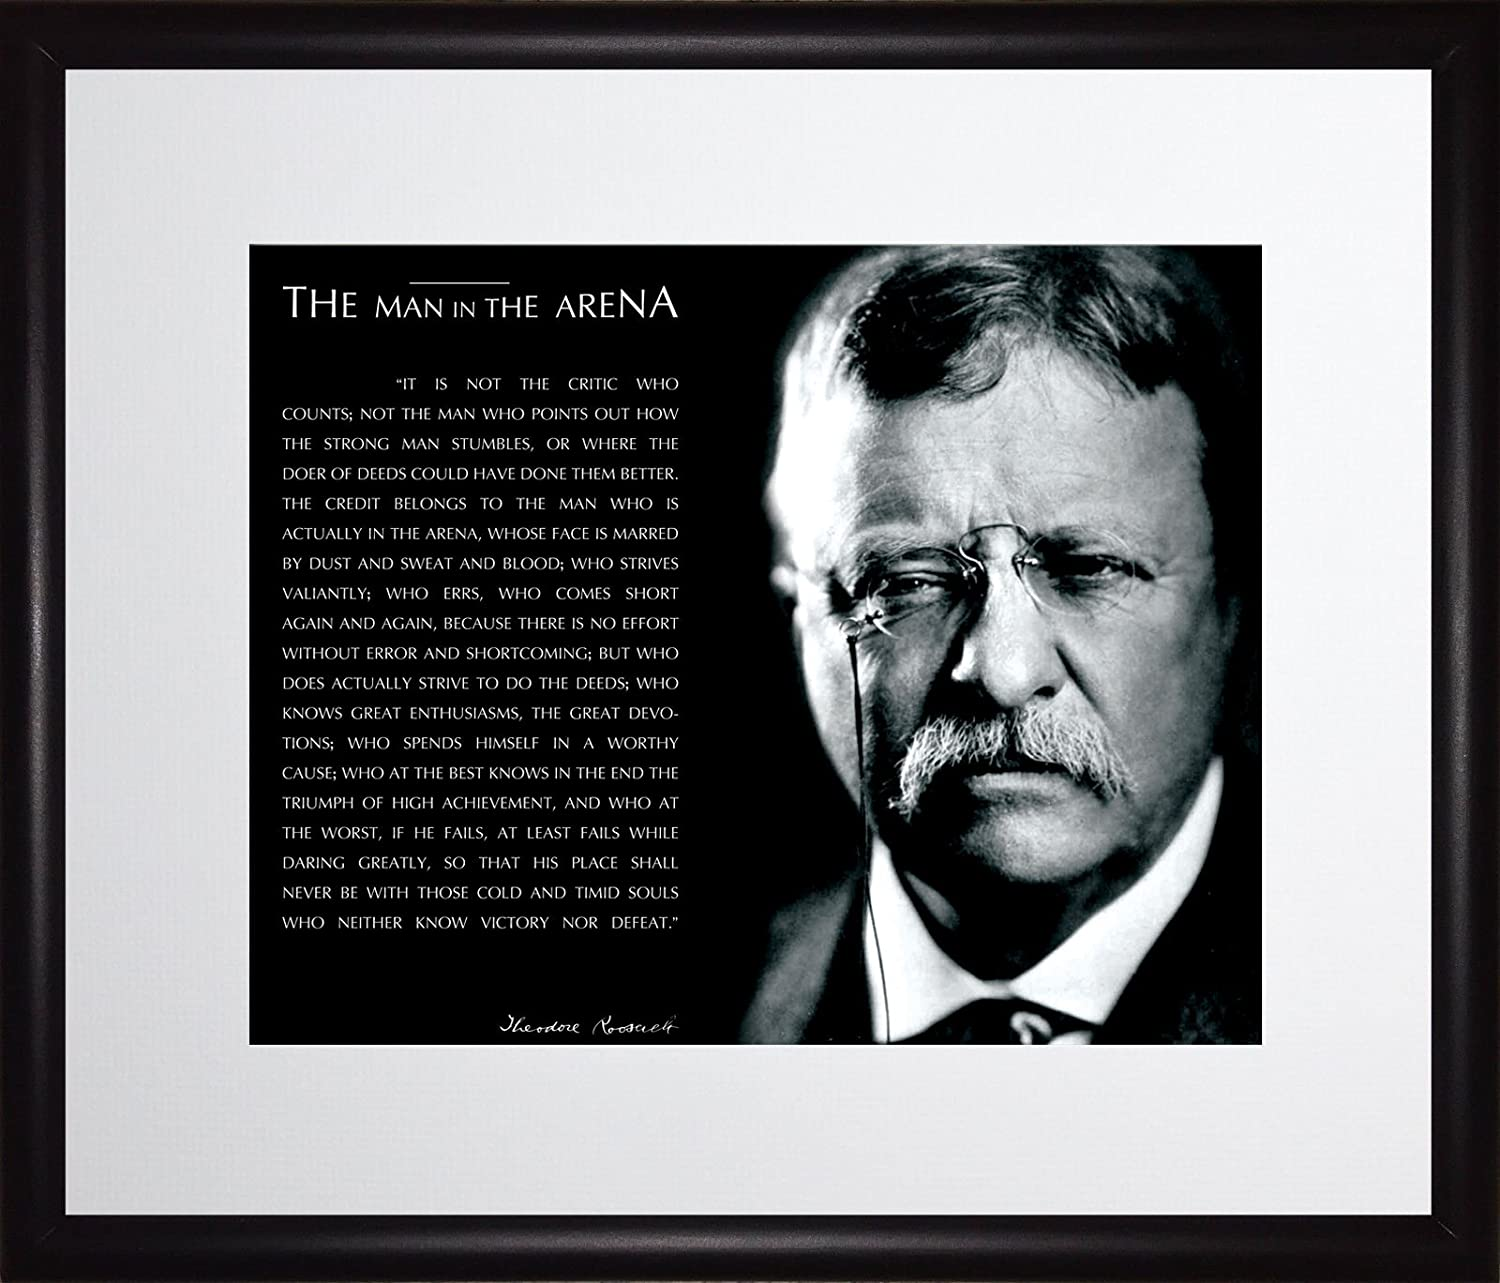 B012U6D7Q0 WeSellPhotos Theodore Teddy Roosevelt The Man in The Arena Quote 8x10 Framed Picture (Black and White with Signature) (11x14 Black Wood Frame Matted to 8x10 Opening) 71DybULVm-L